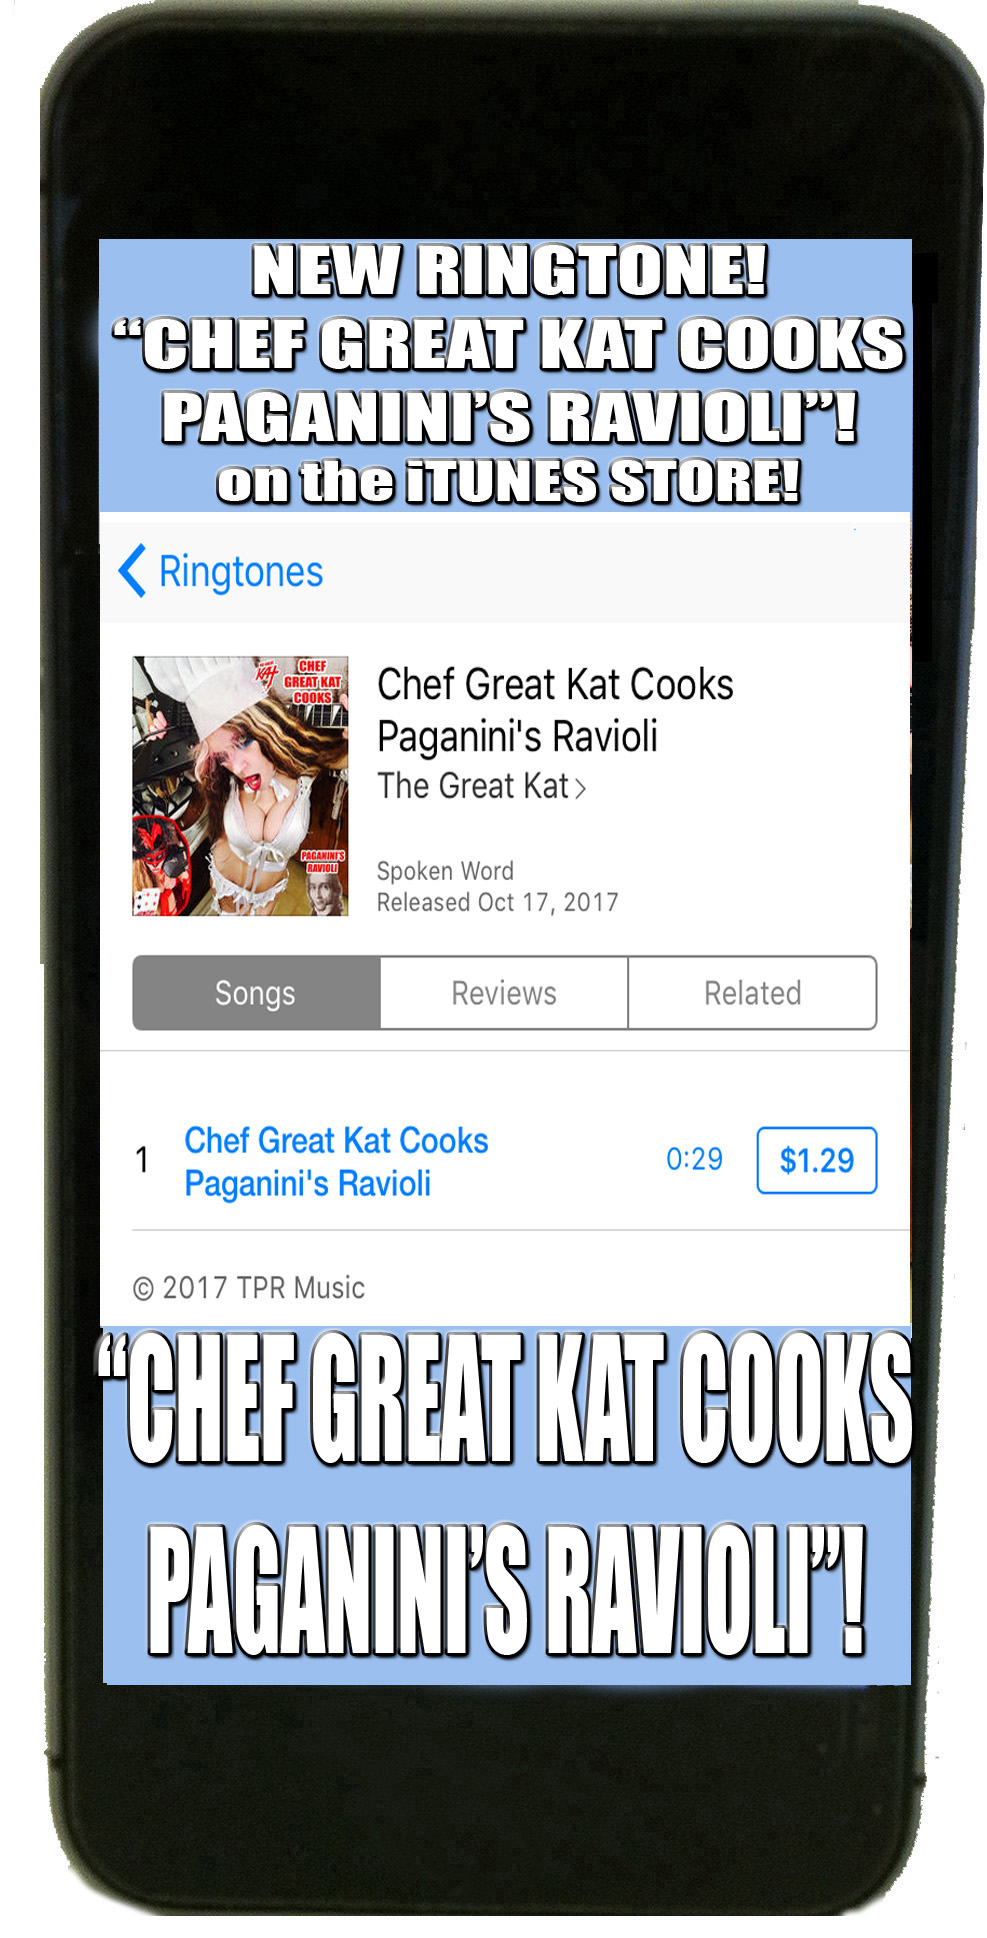 NEW RINGTONE for your iPHONE! CHEF GREAT KAT COOKS PAGANINI'S RAVIOLI!